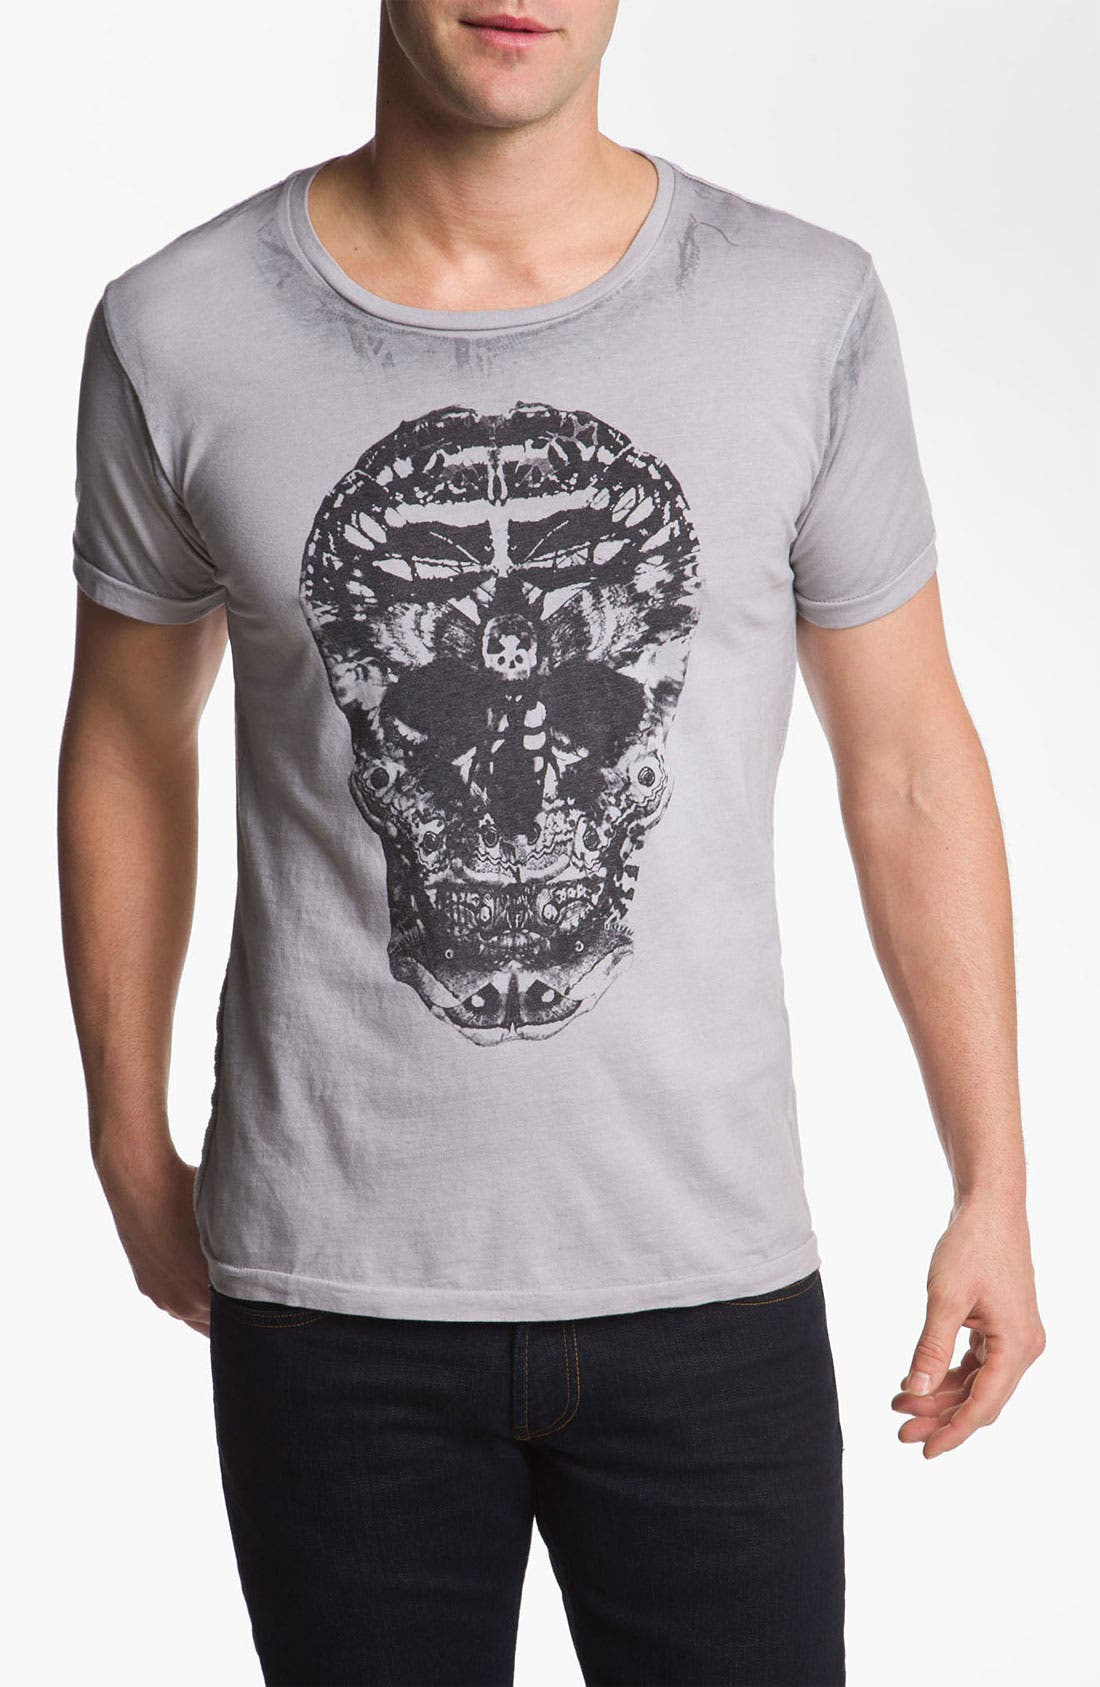 Main Image - Black Hearts Brigade 'Death Moth Skull' Graphic T-Shirt